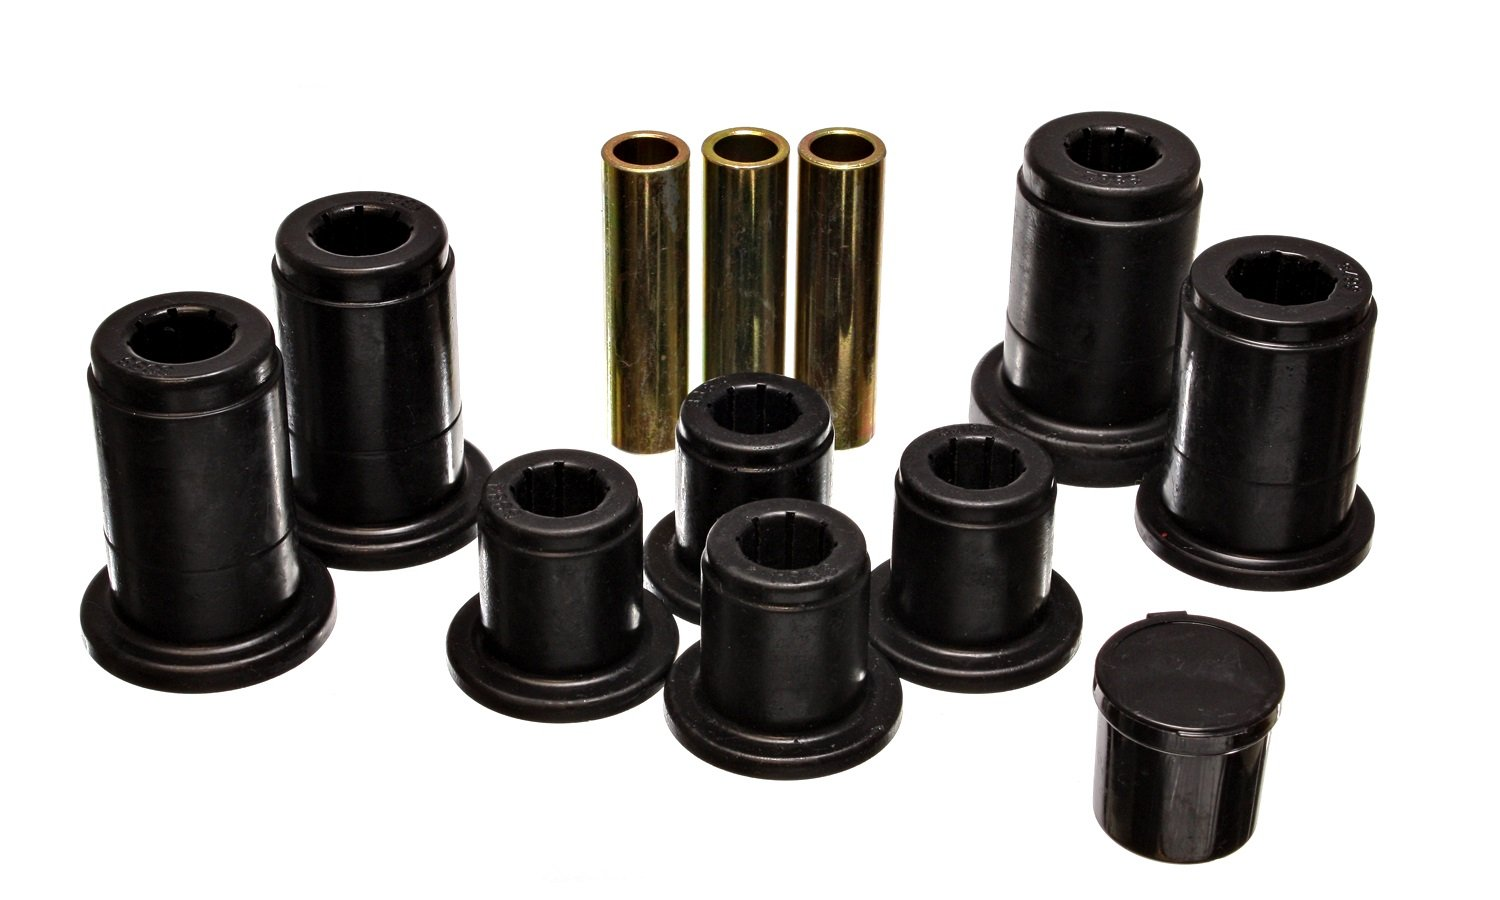 Energy Suspension ENE 4.3168G Lenkerlenkerbuchsen Set von Energy Suspension